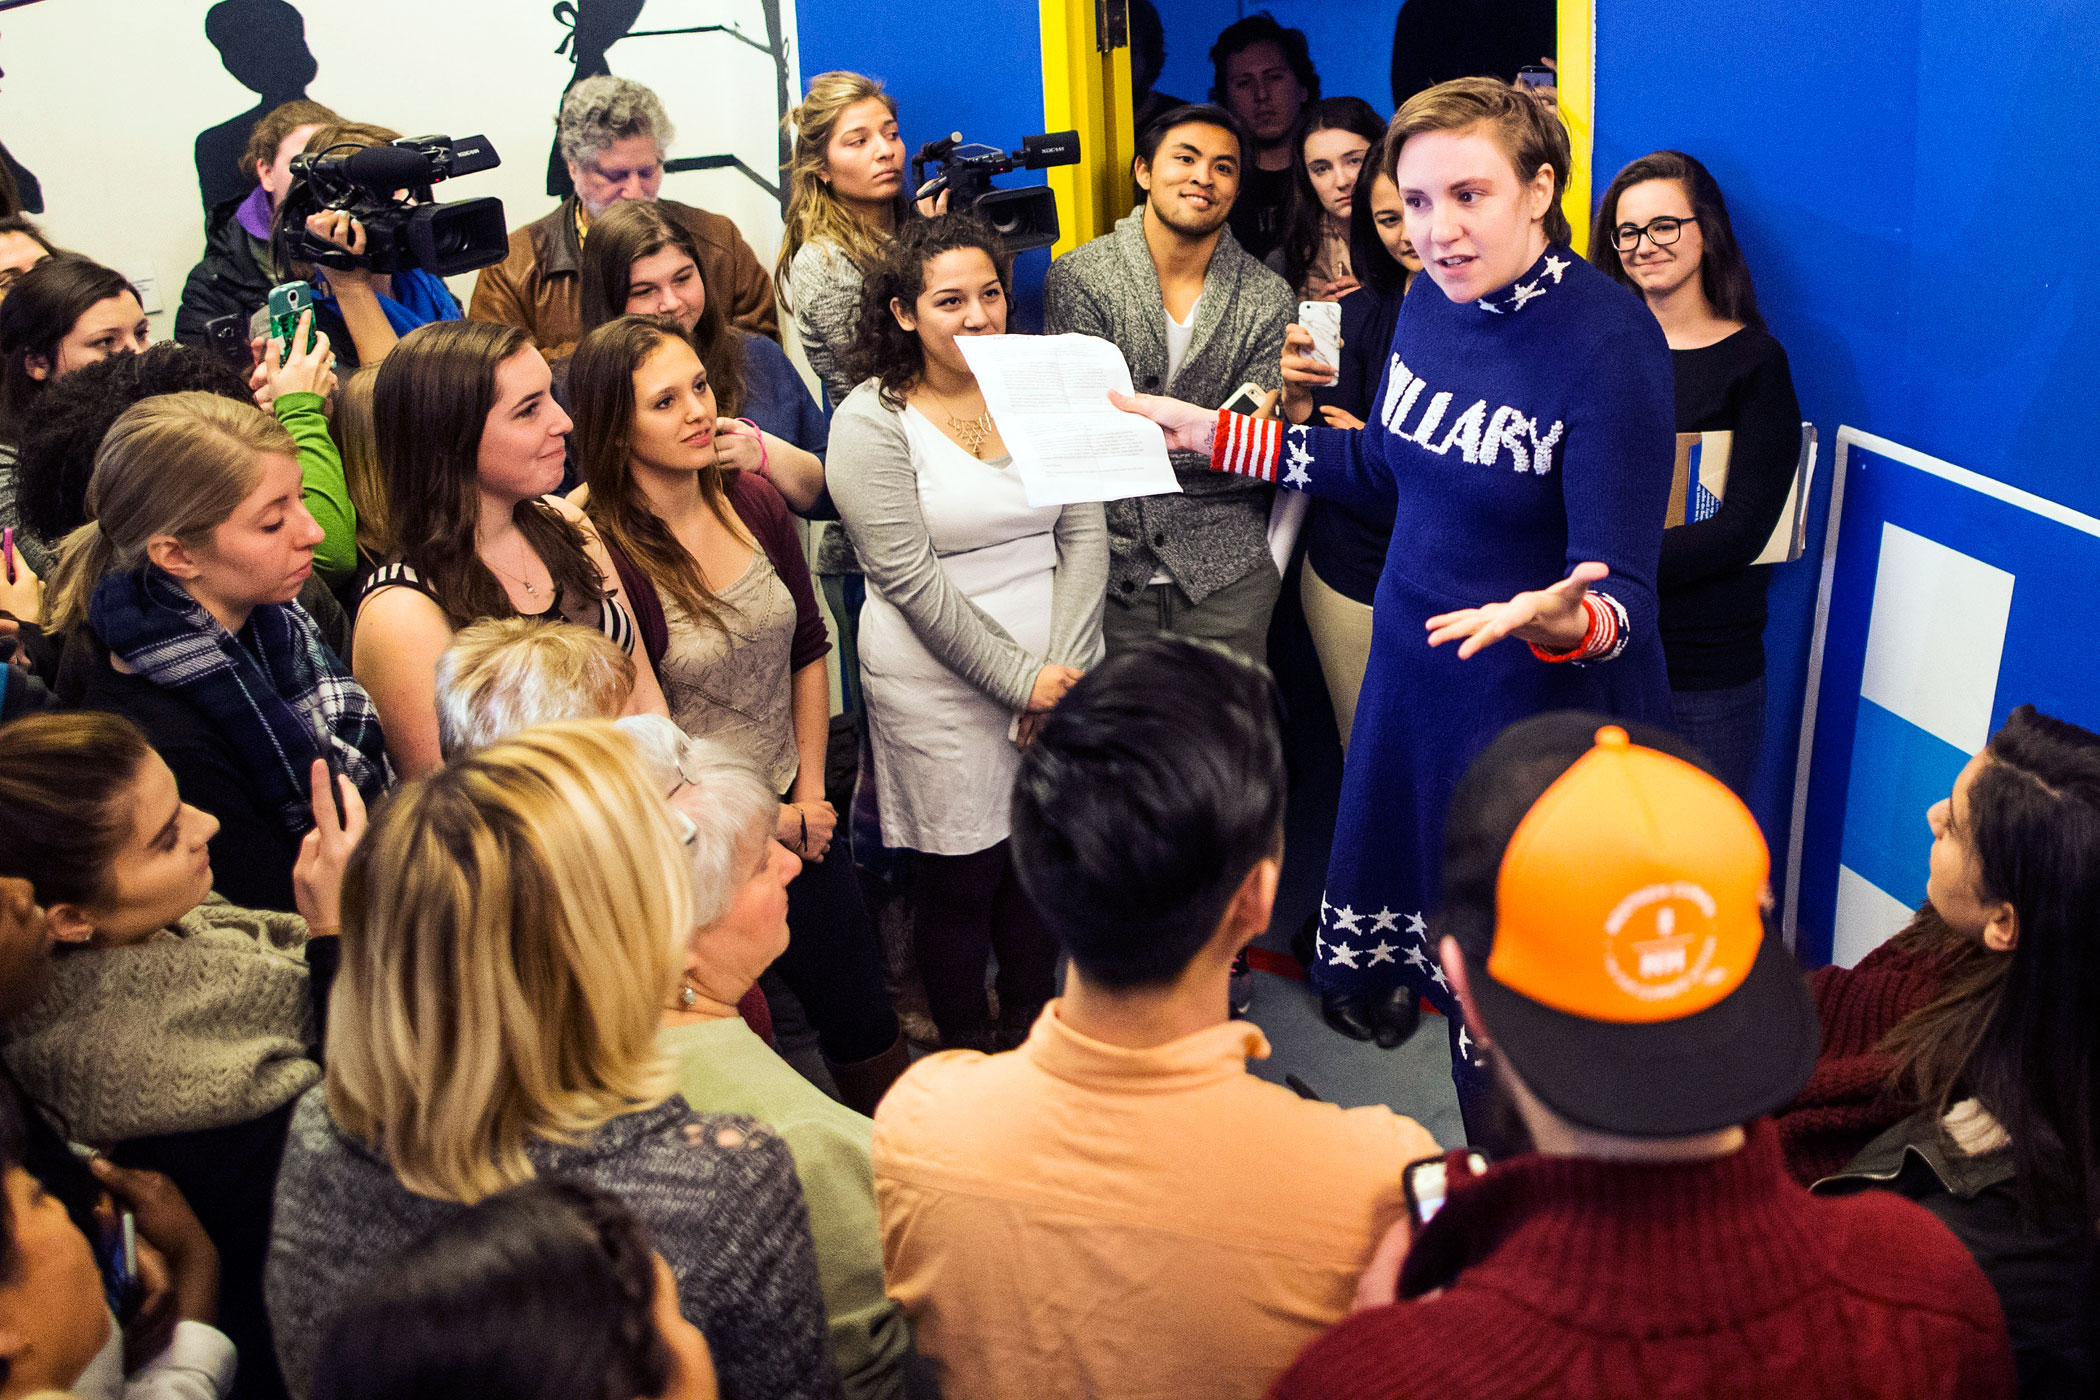 Screenwriter and actress Lena Dunham supports Democratic presidential candidate Hillary Clinton. Here she speaks at a Hillary Clinton campaign office on Jan. 8, 2016 in Manchester, N.H.